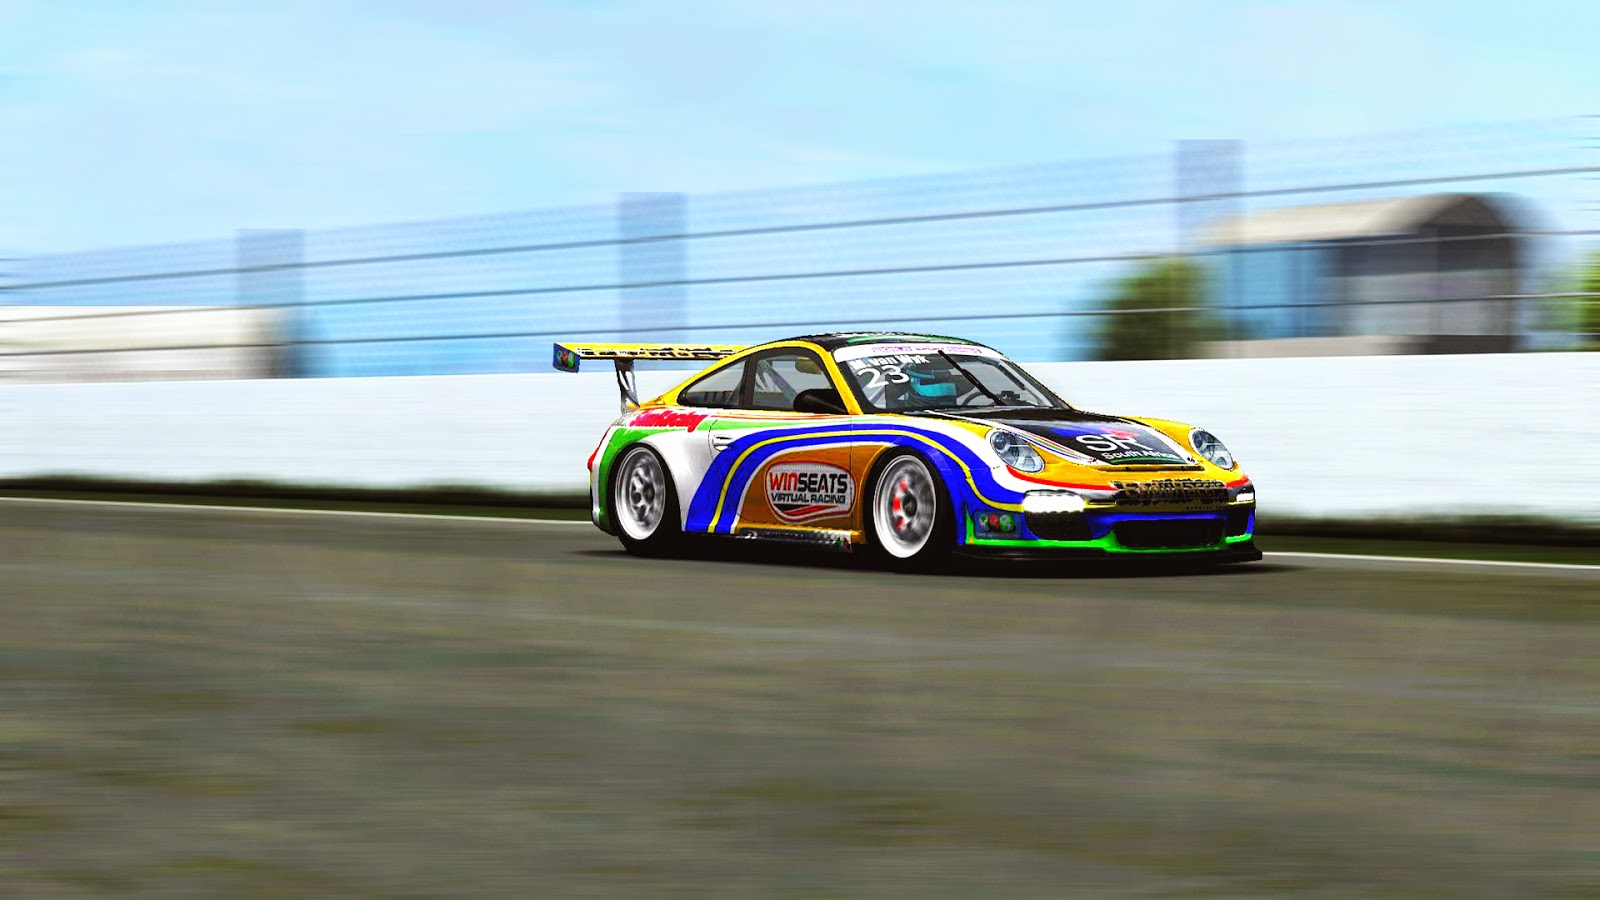 Marius practicing on the Spanish Track for the 2nd Round of the 2014 GPVWC WSS Race